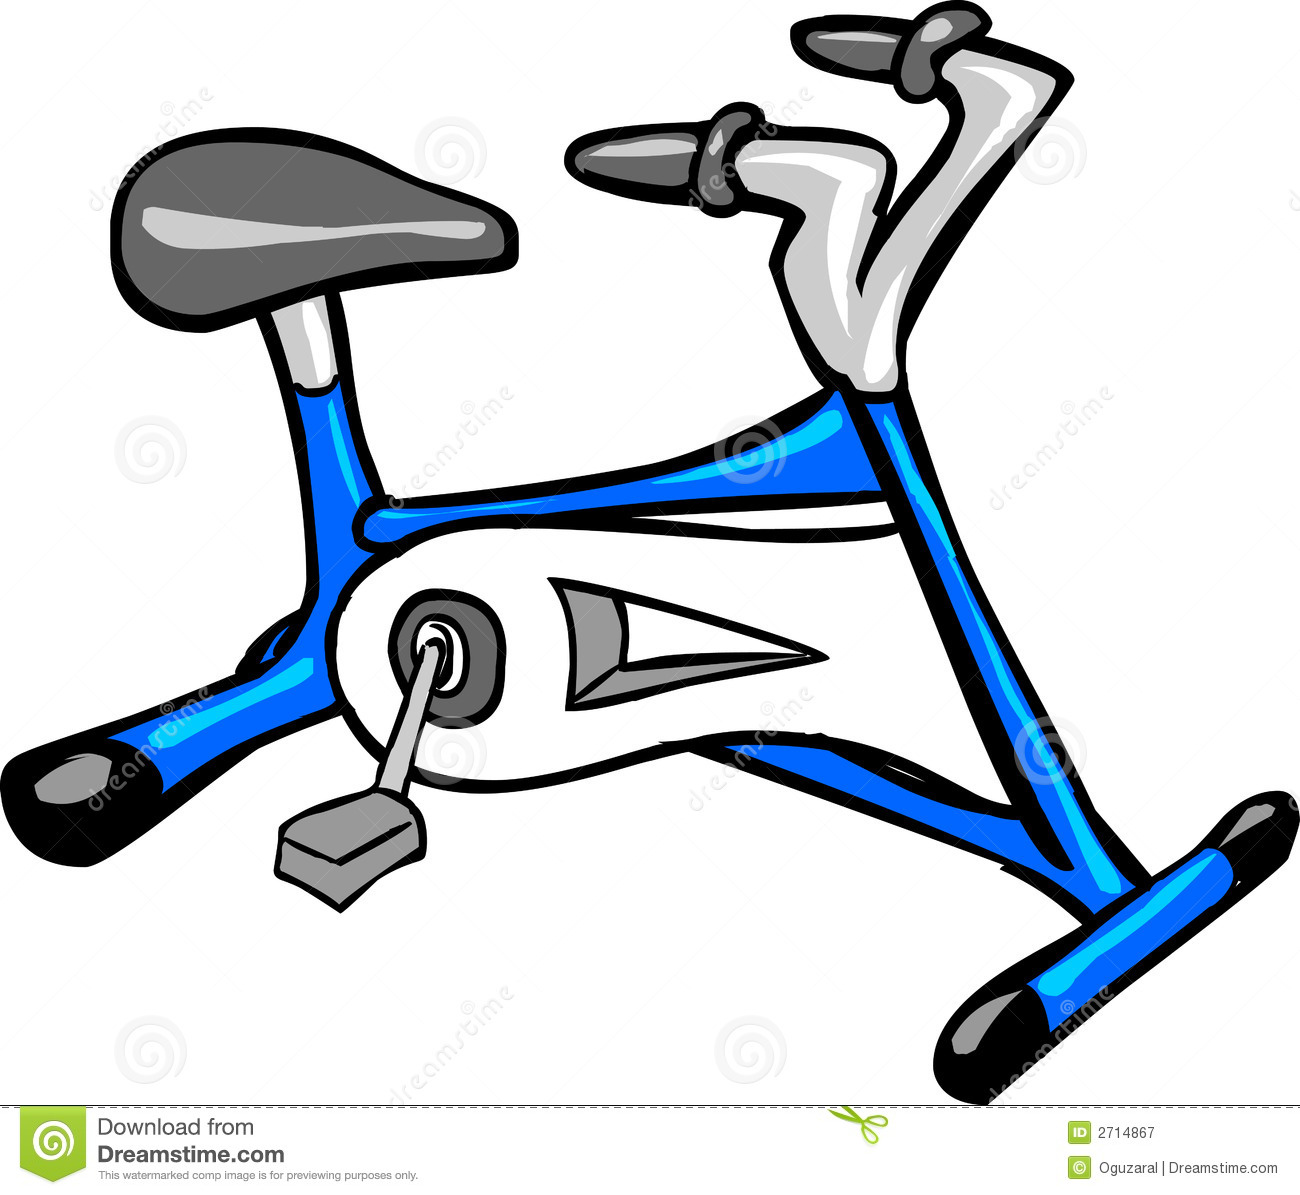 gym equipment names and pictures and uses pdf